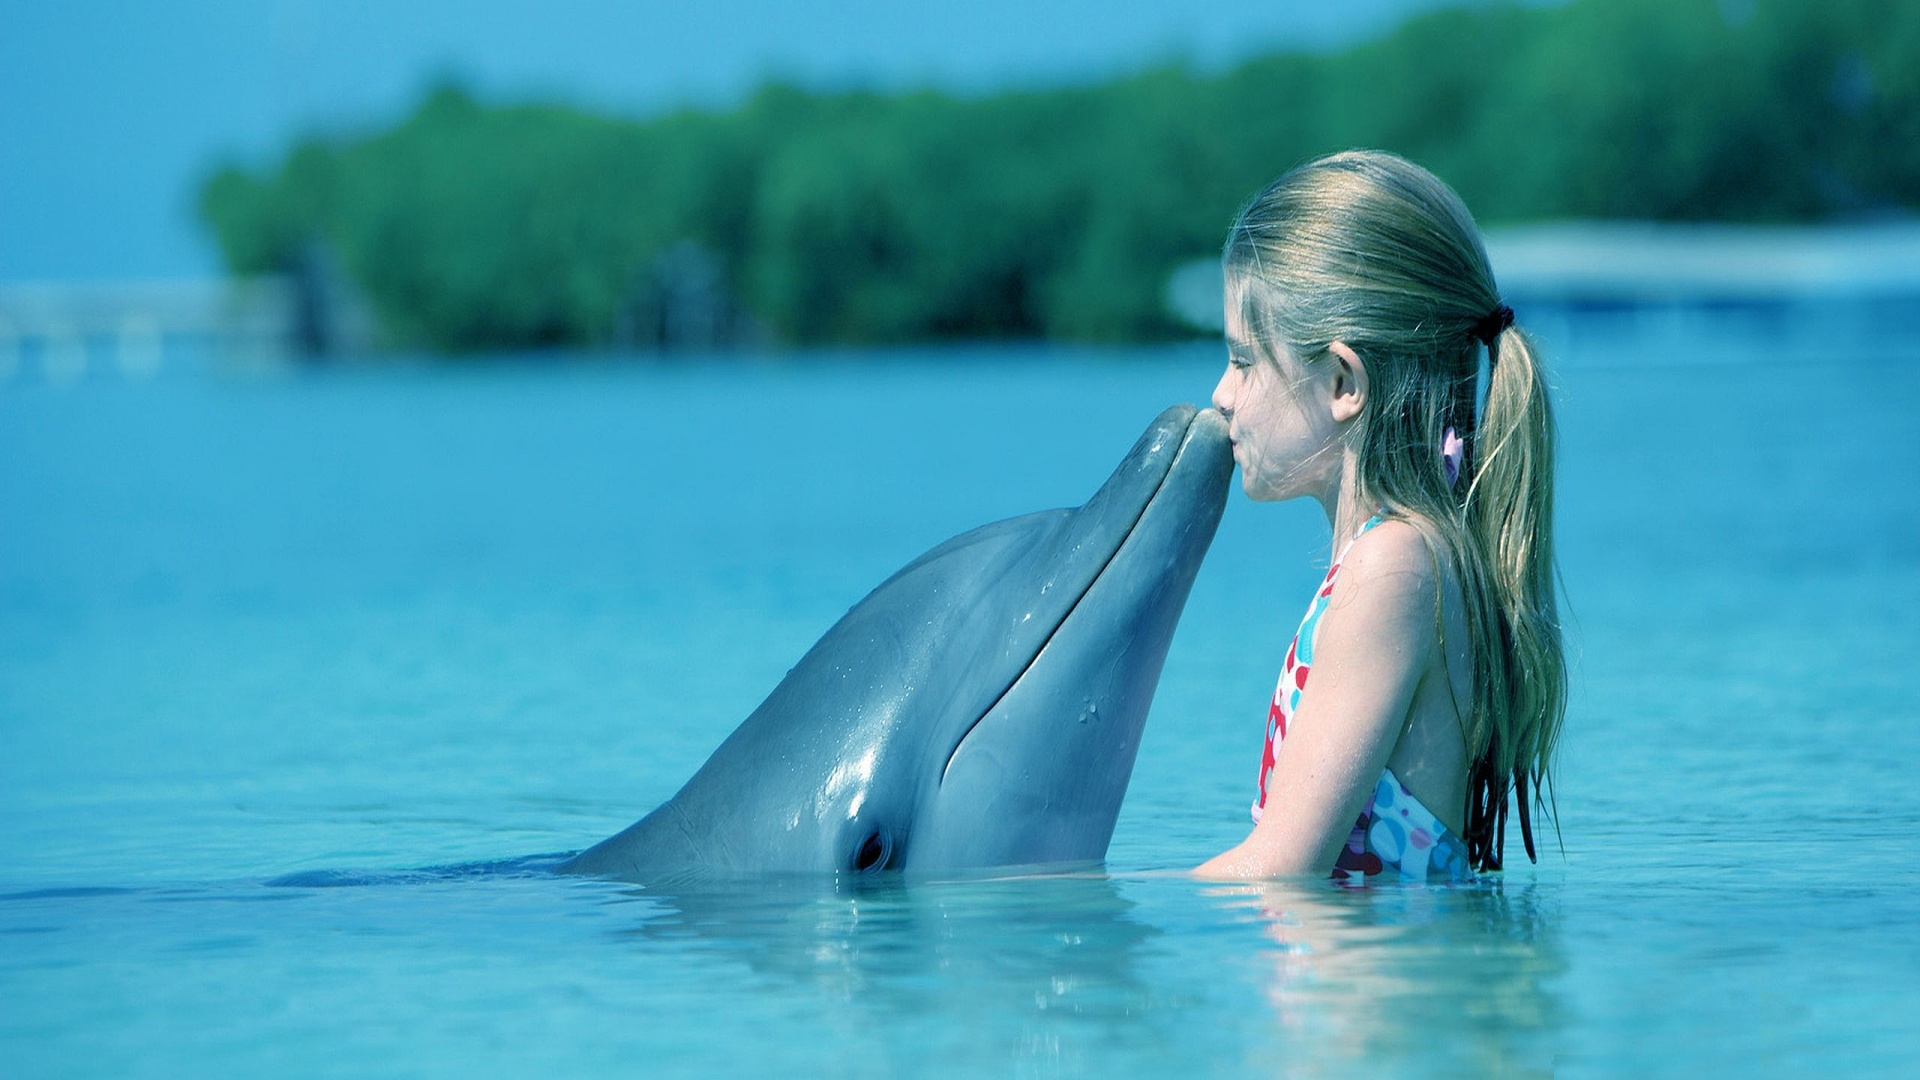 Dolphin Wallpapers HD 1920x1080